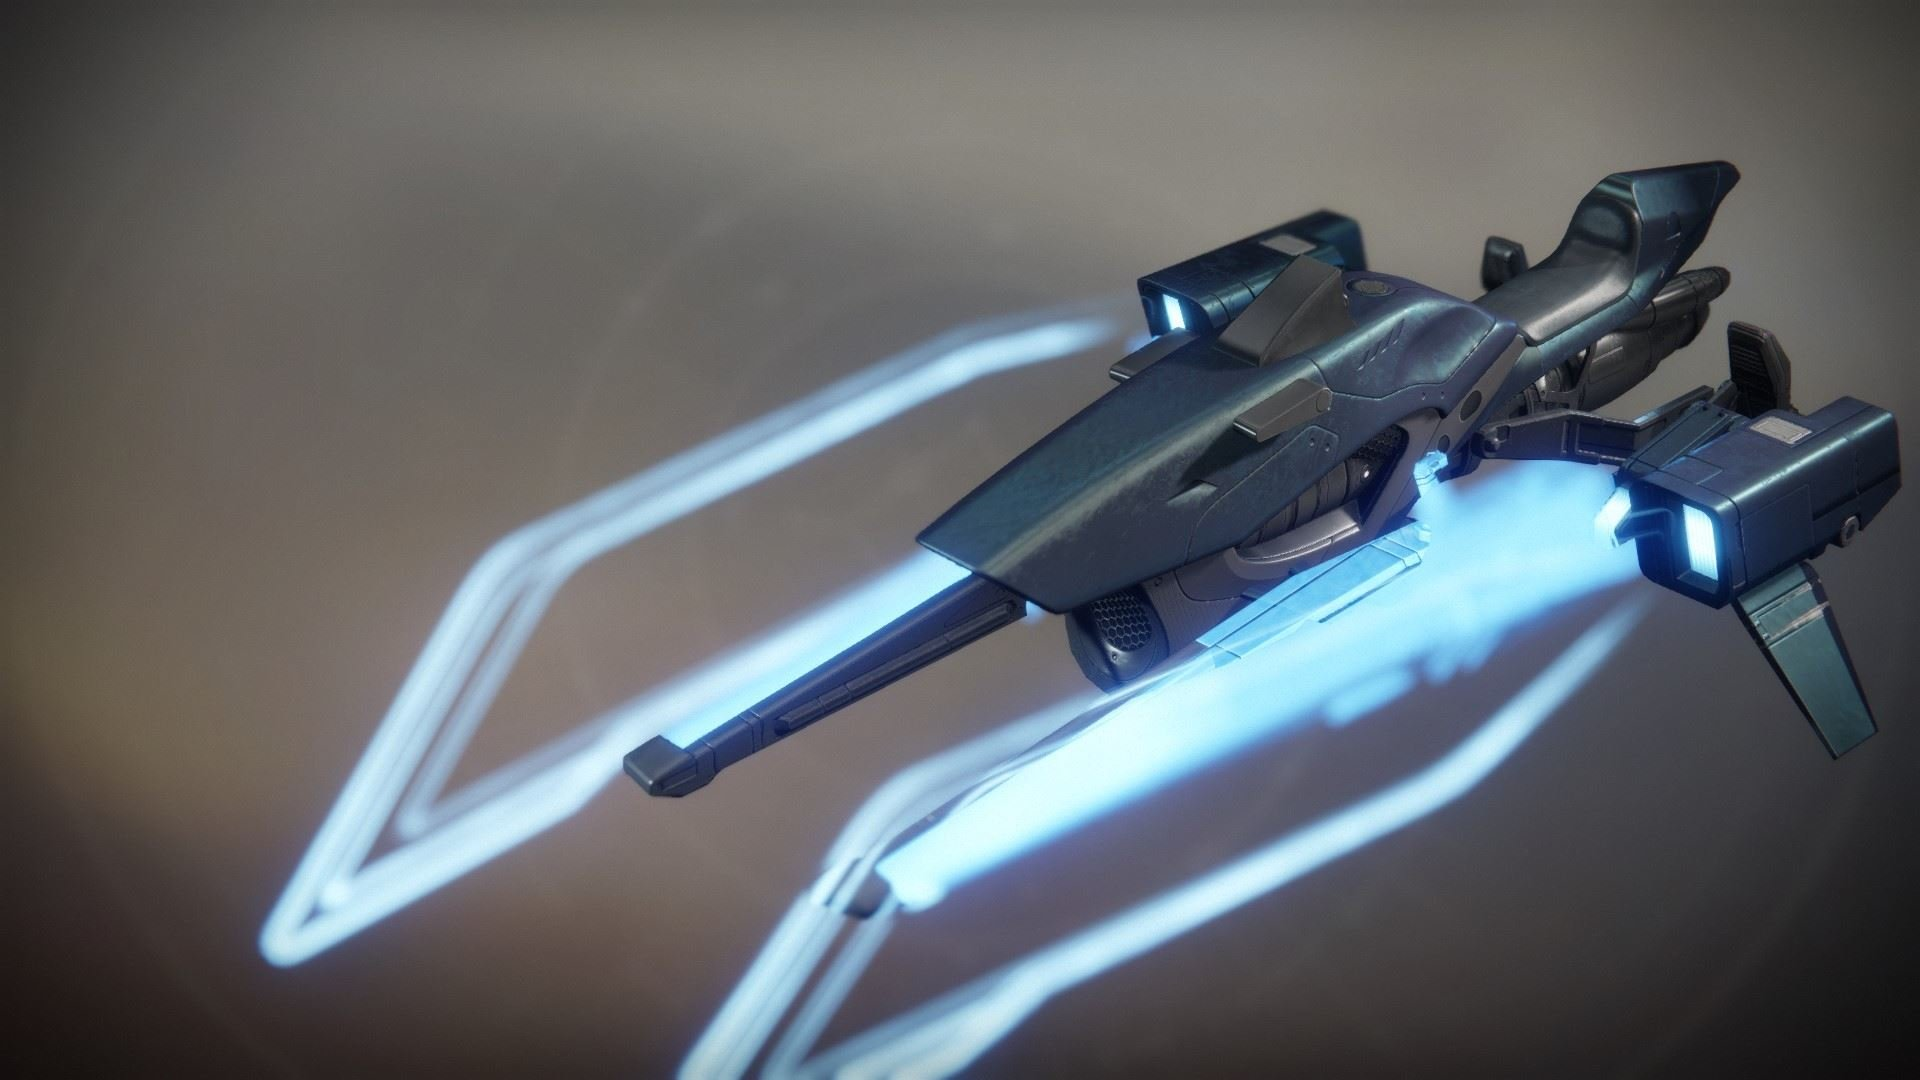 An in-game render of the Blacklight Razor.